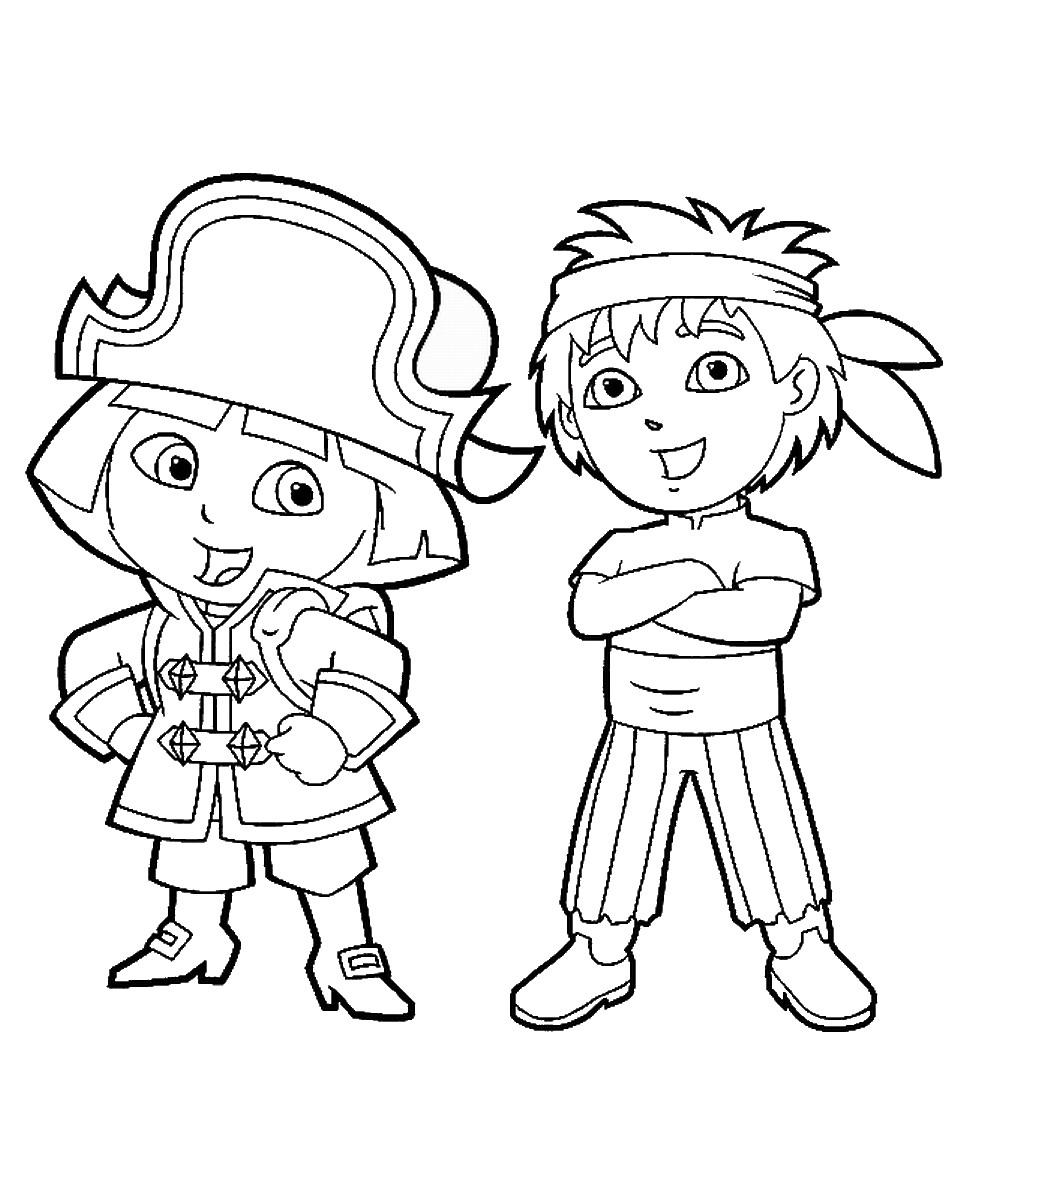 dora coloring dora the explorer coloring pages dora coloring